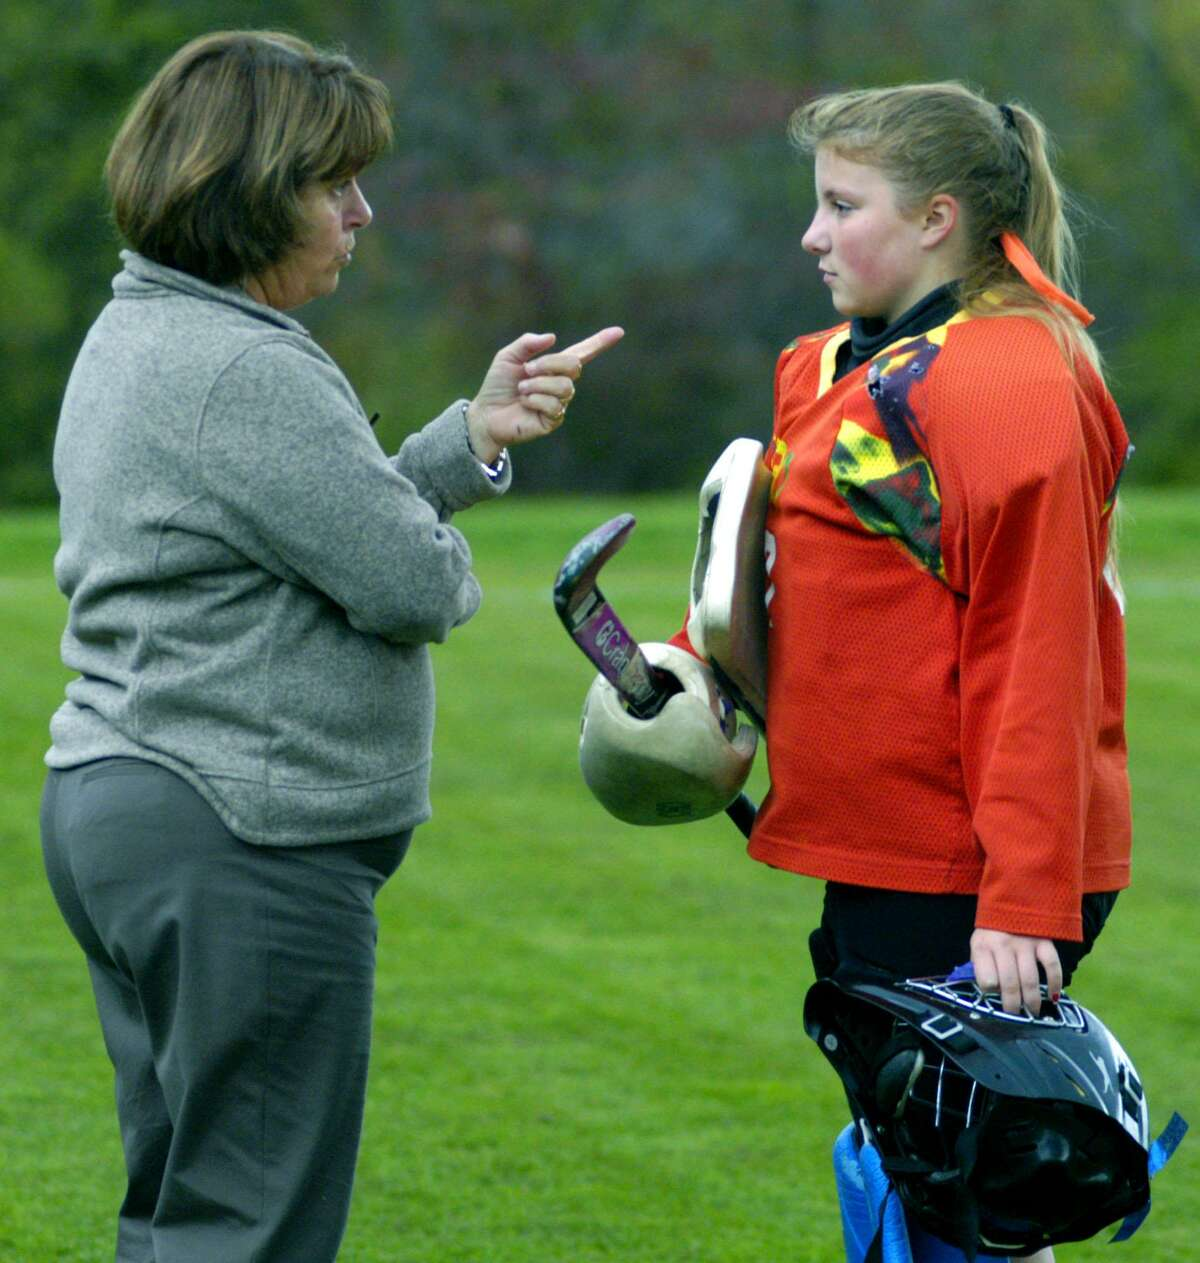 Shepaug High field hockey coach Jaye Stuart has been guiding the Spartans for 24 years. She will be inducted into the Connecticut High School Coaches Association Hall of Fame and the CT Field Hockey Coaches Association Hall of Fame this fall.